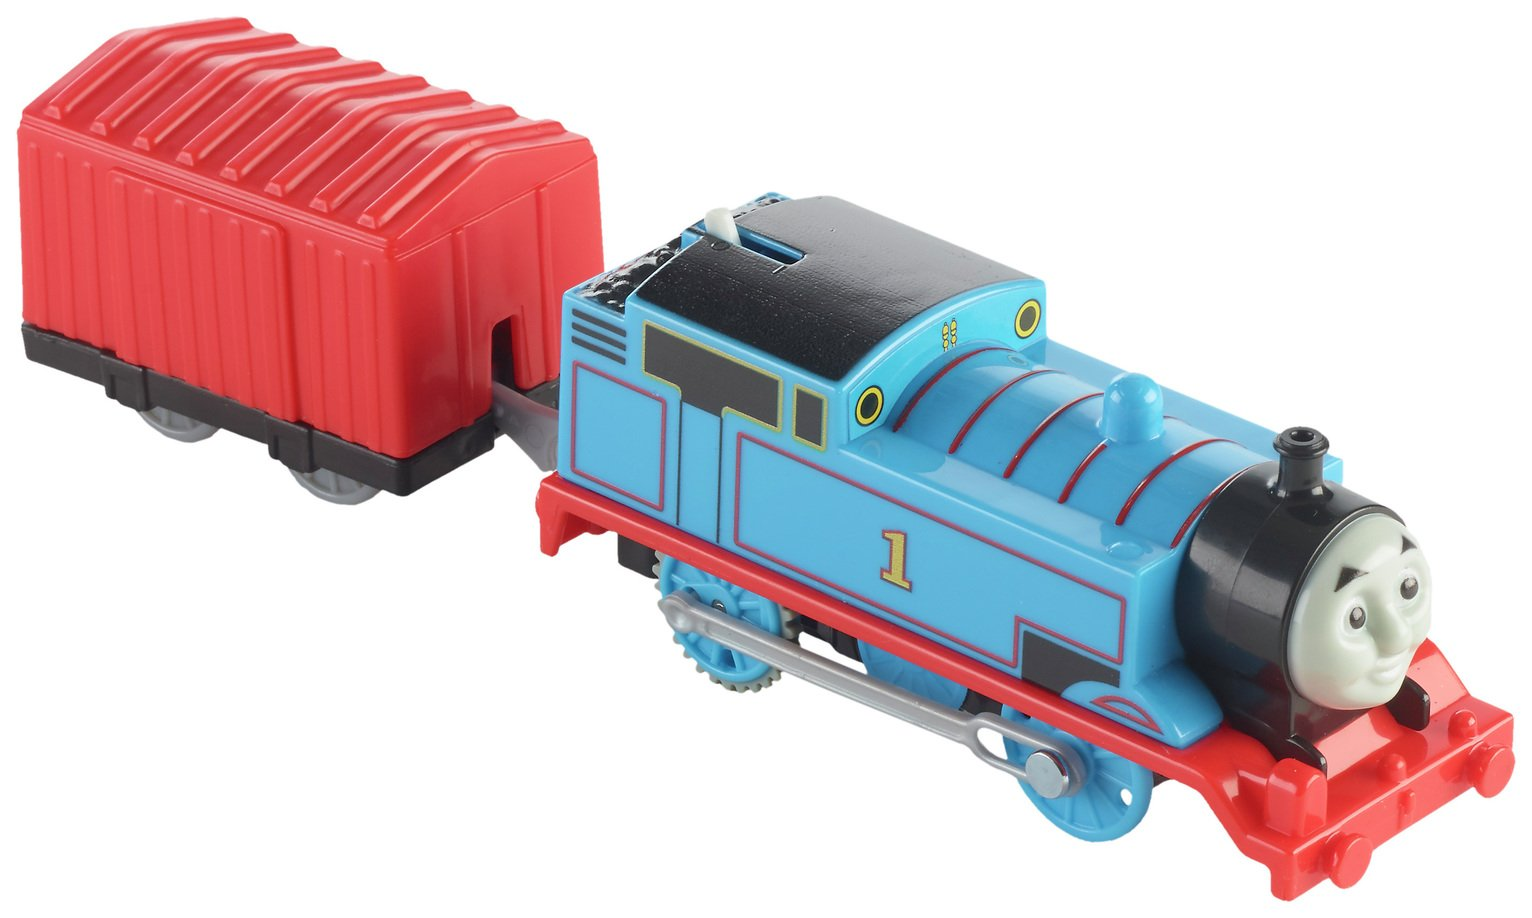 Thomas & Friends TrackMaster Motorised Thomas Engine